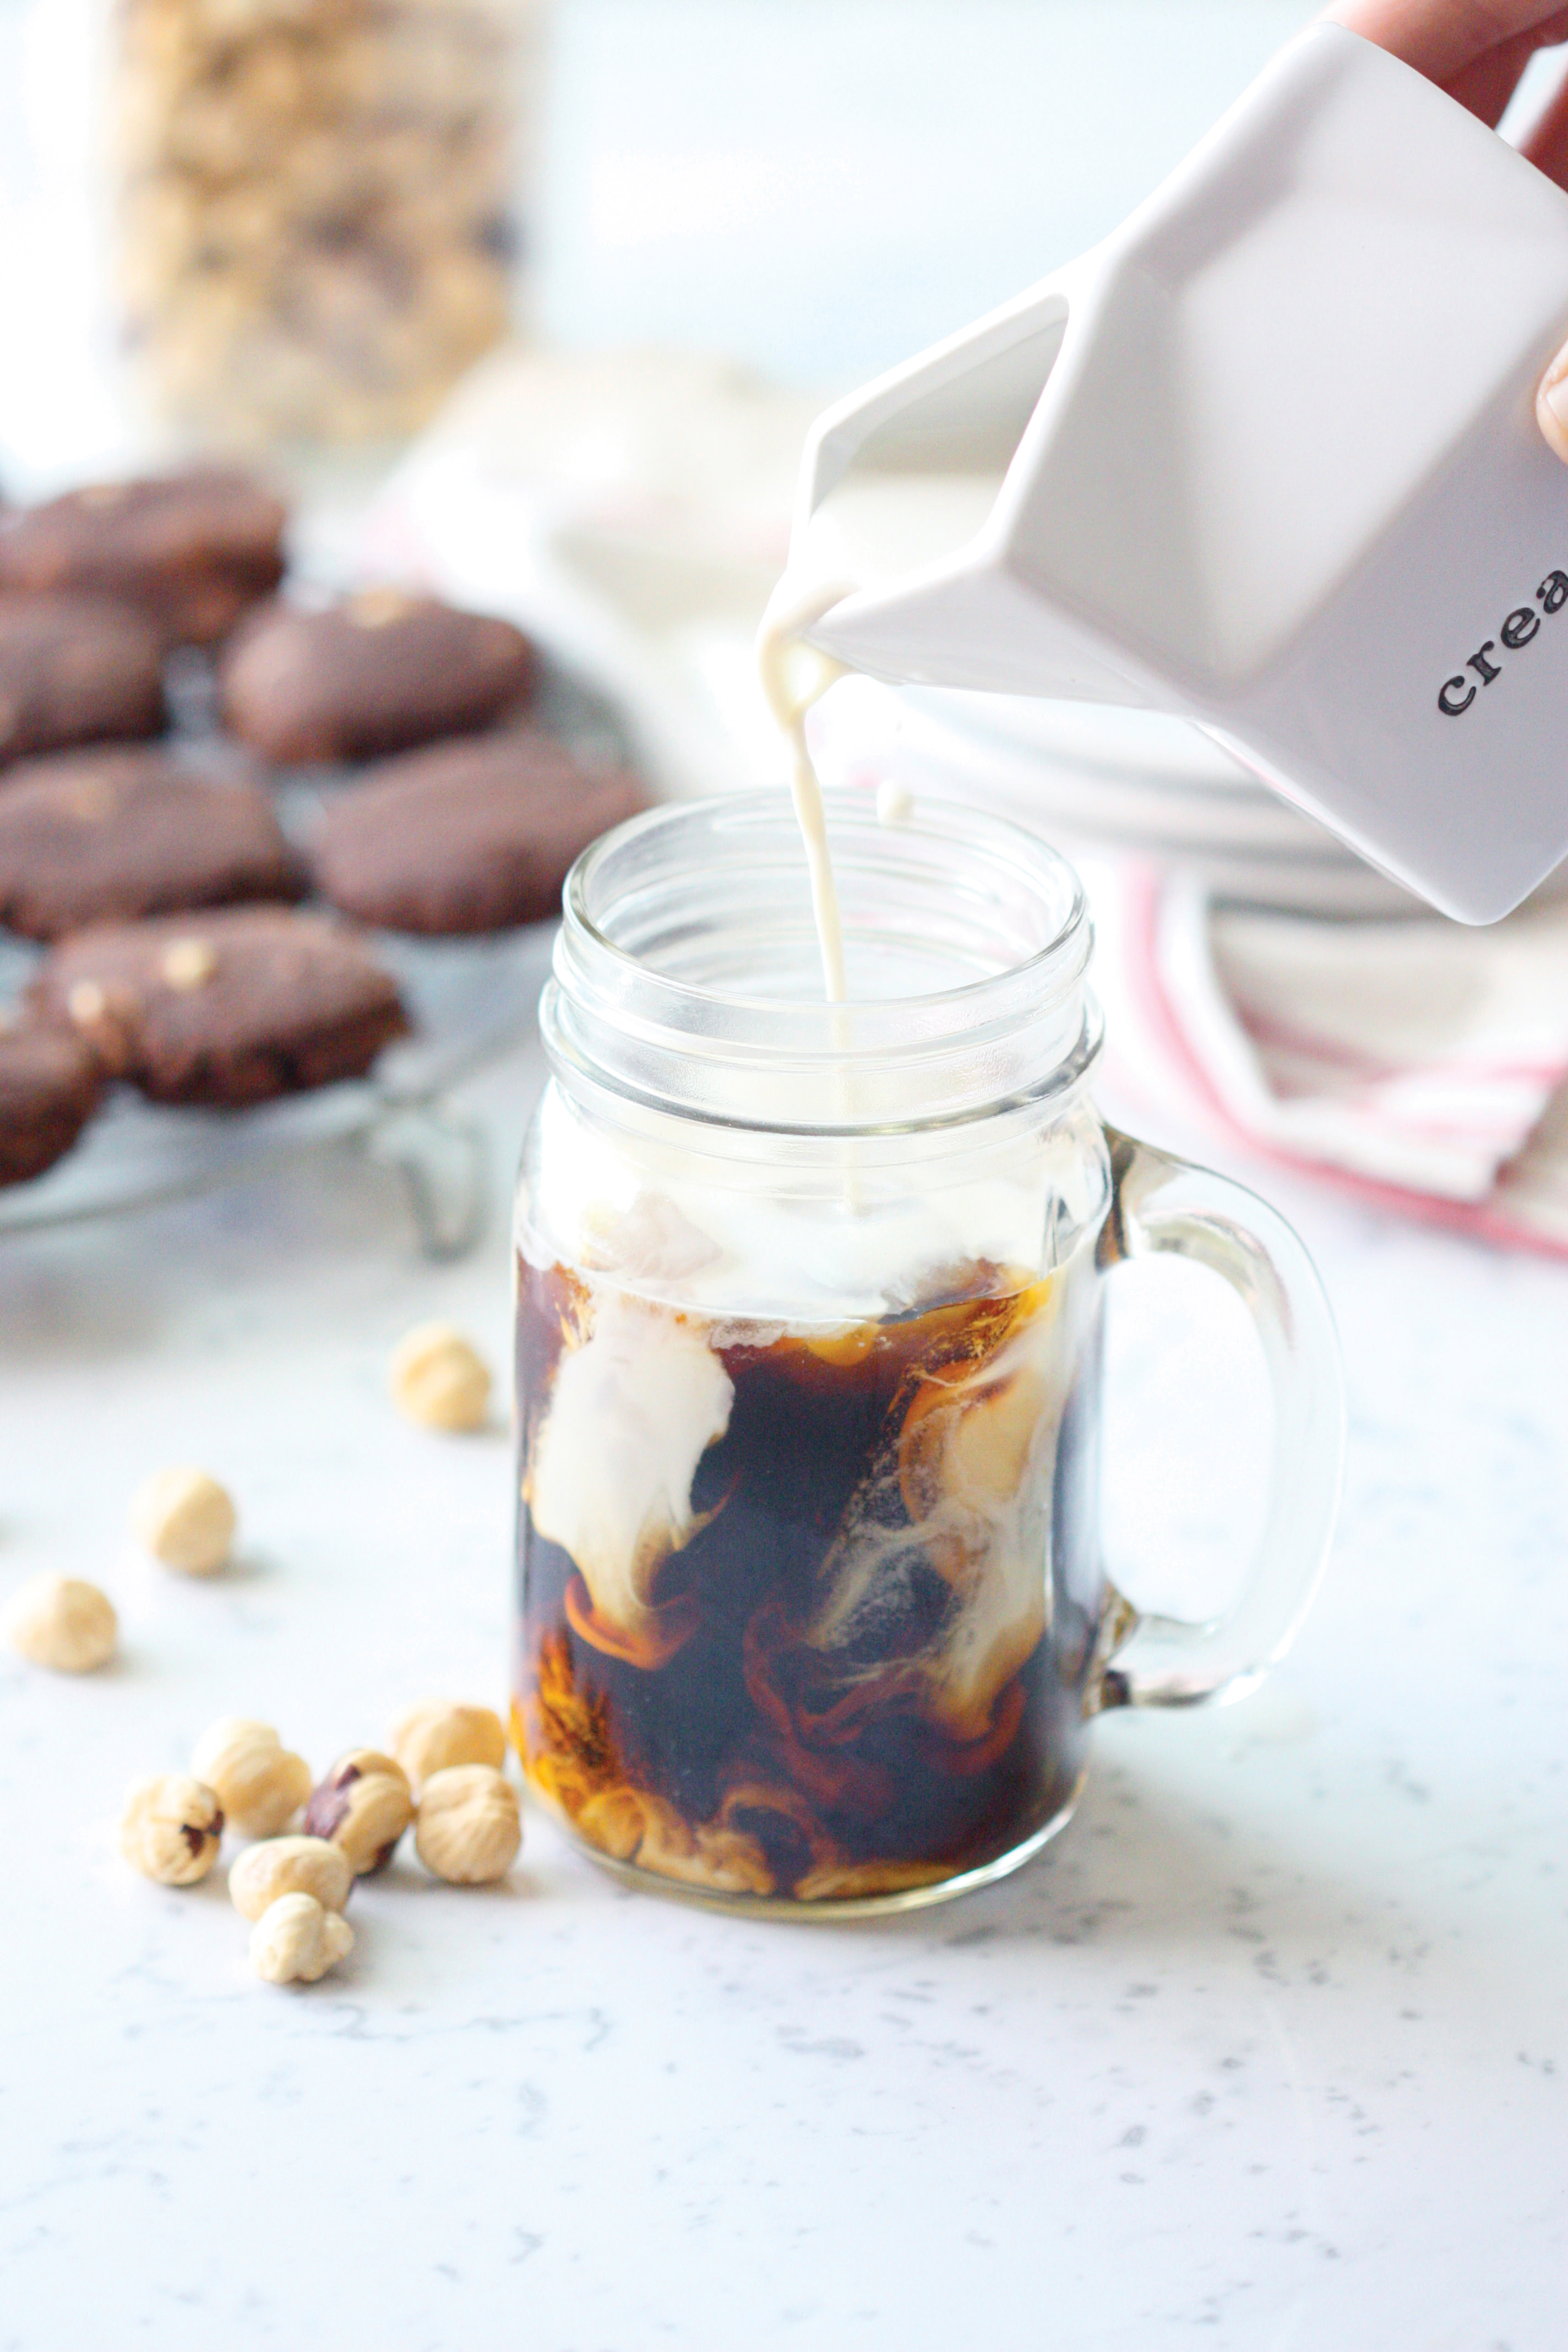 Dairy-free hazelnut coffee creamer recipe for the holidays